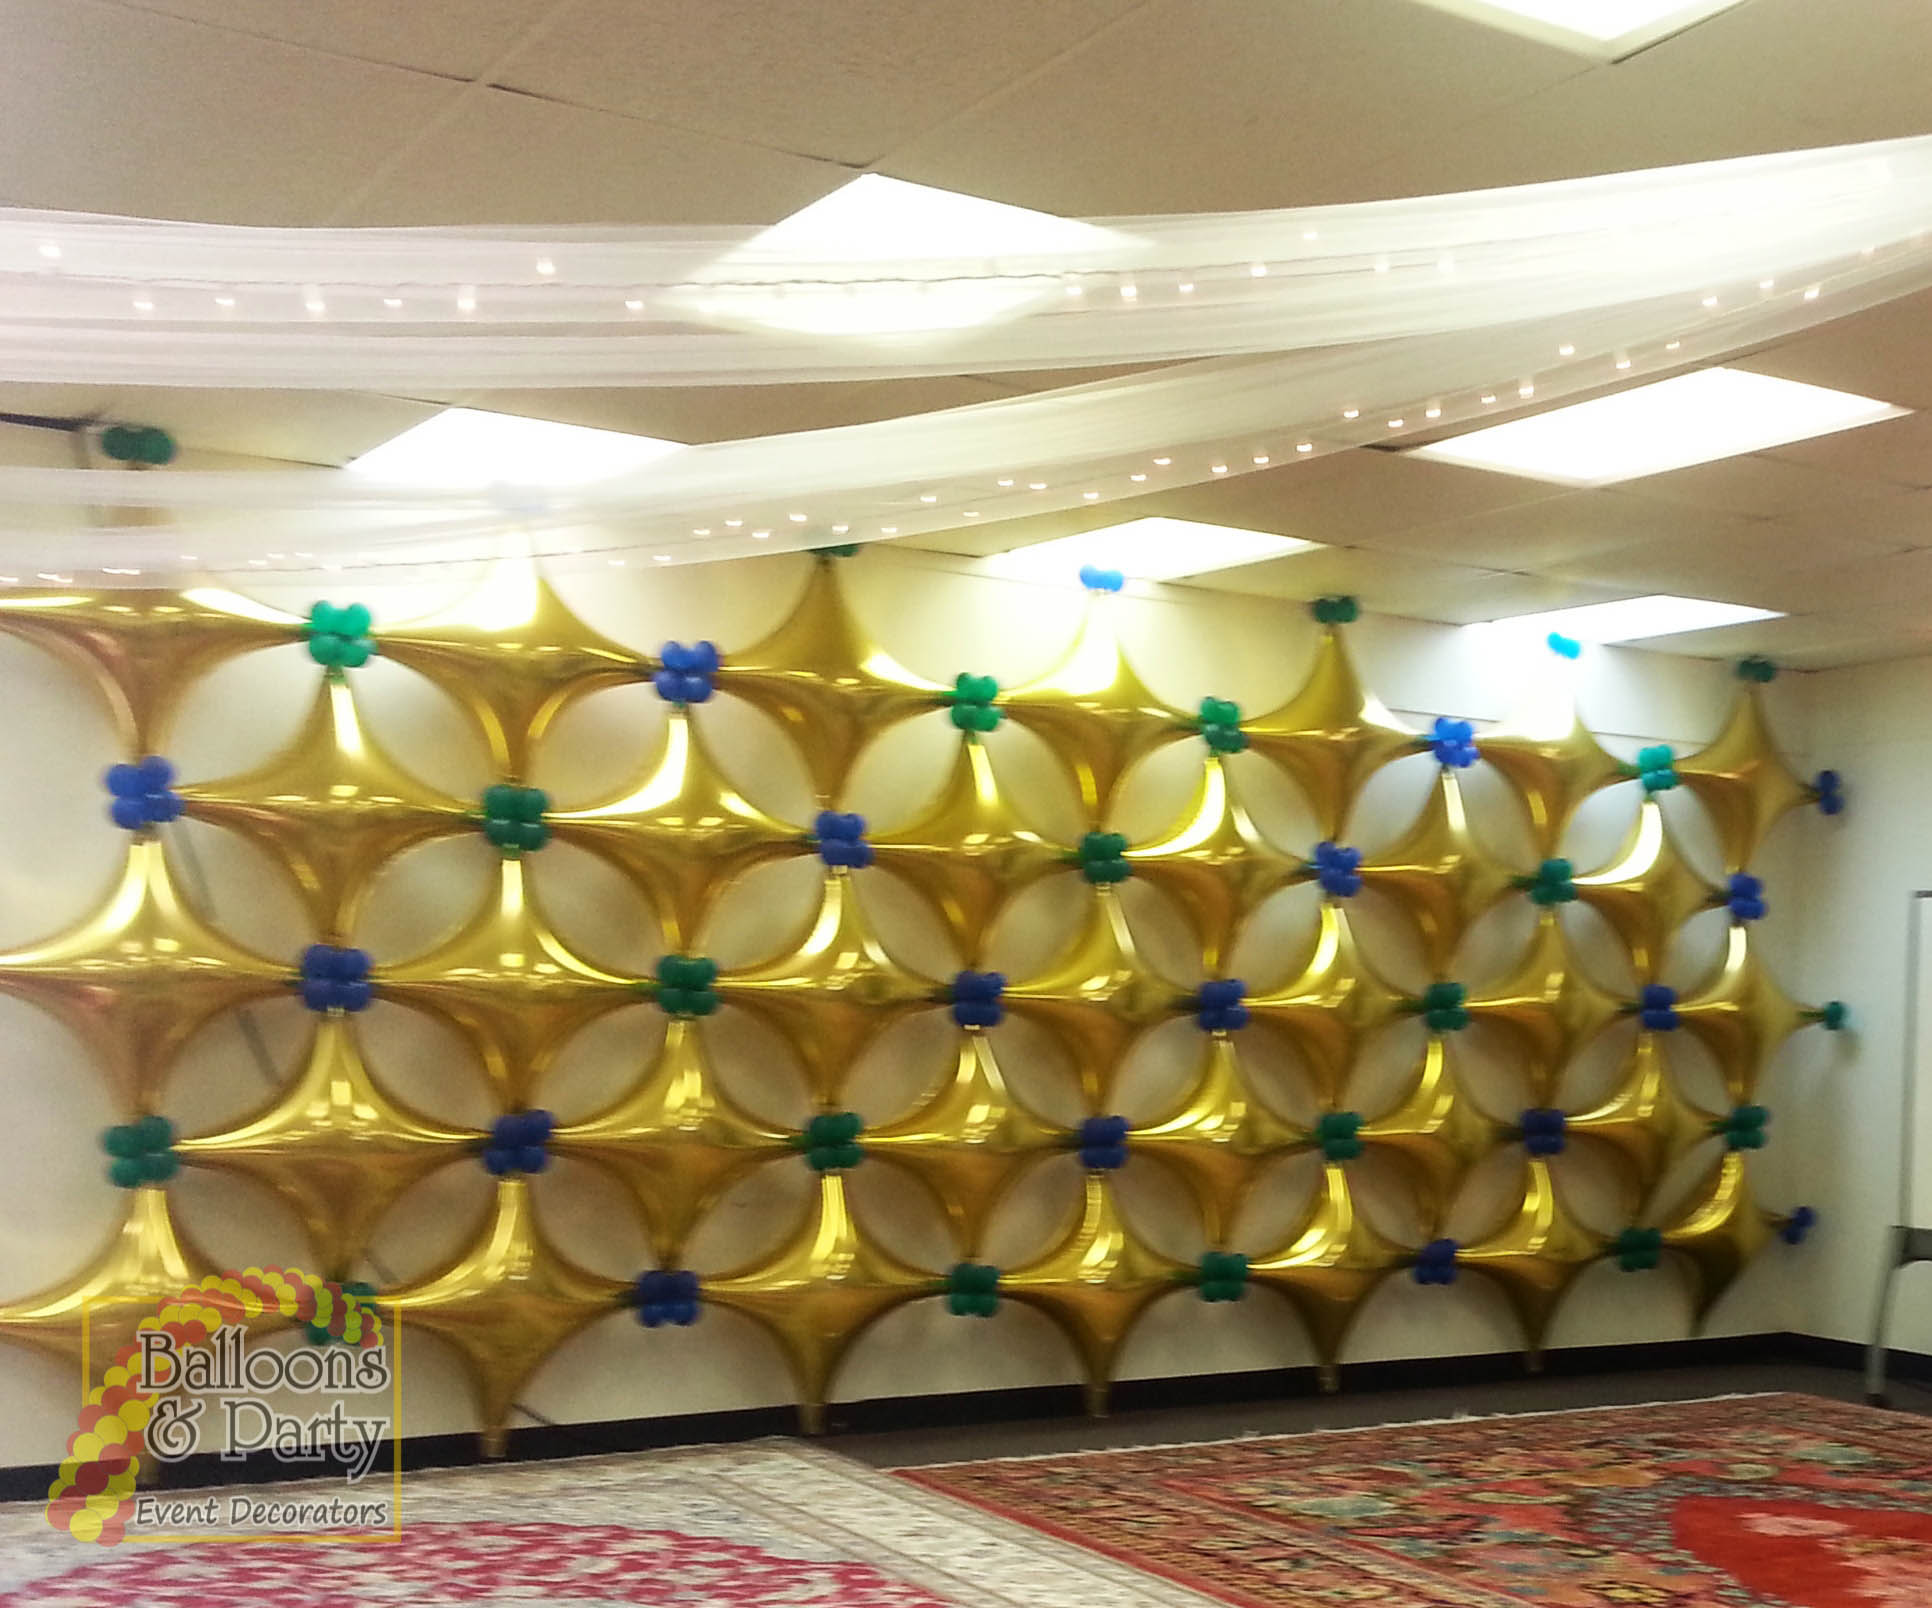 Balloon Walls-Backdrop Ideas - Balloons & Party Decorations